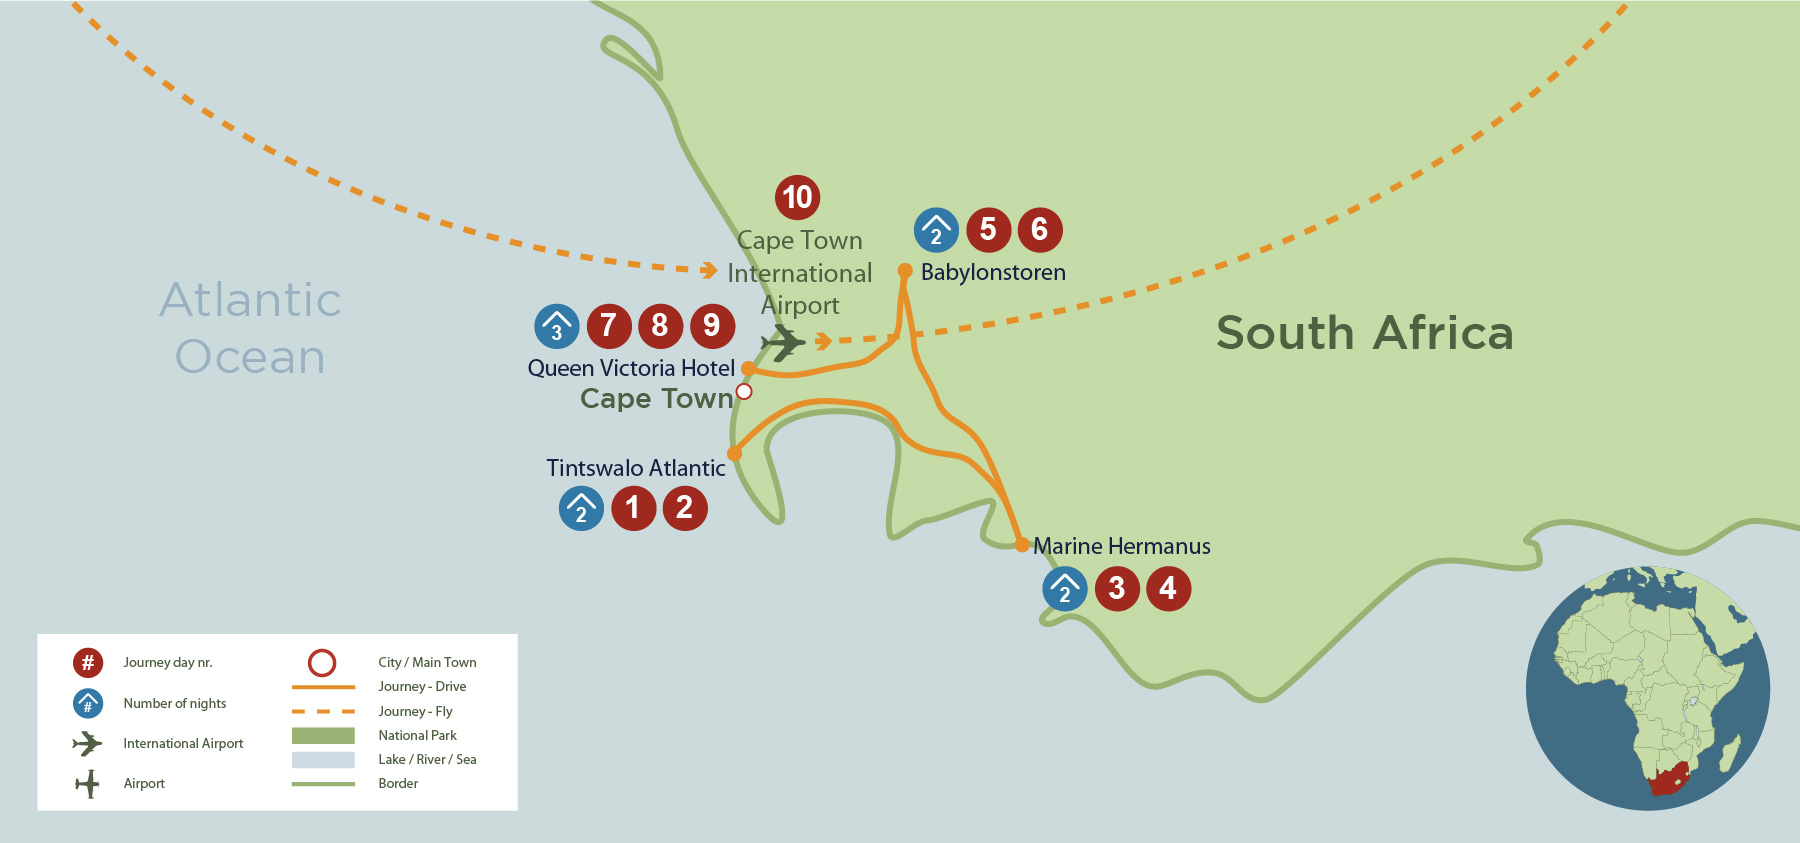 Road Trip through Cape Town's Finest (10 Days) safari map